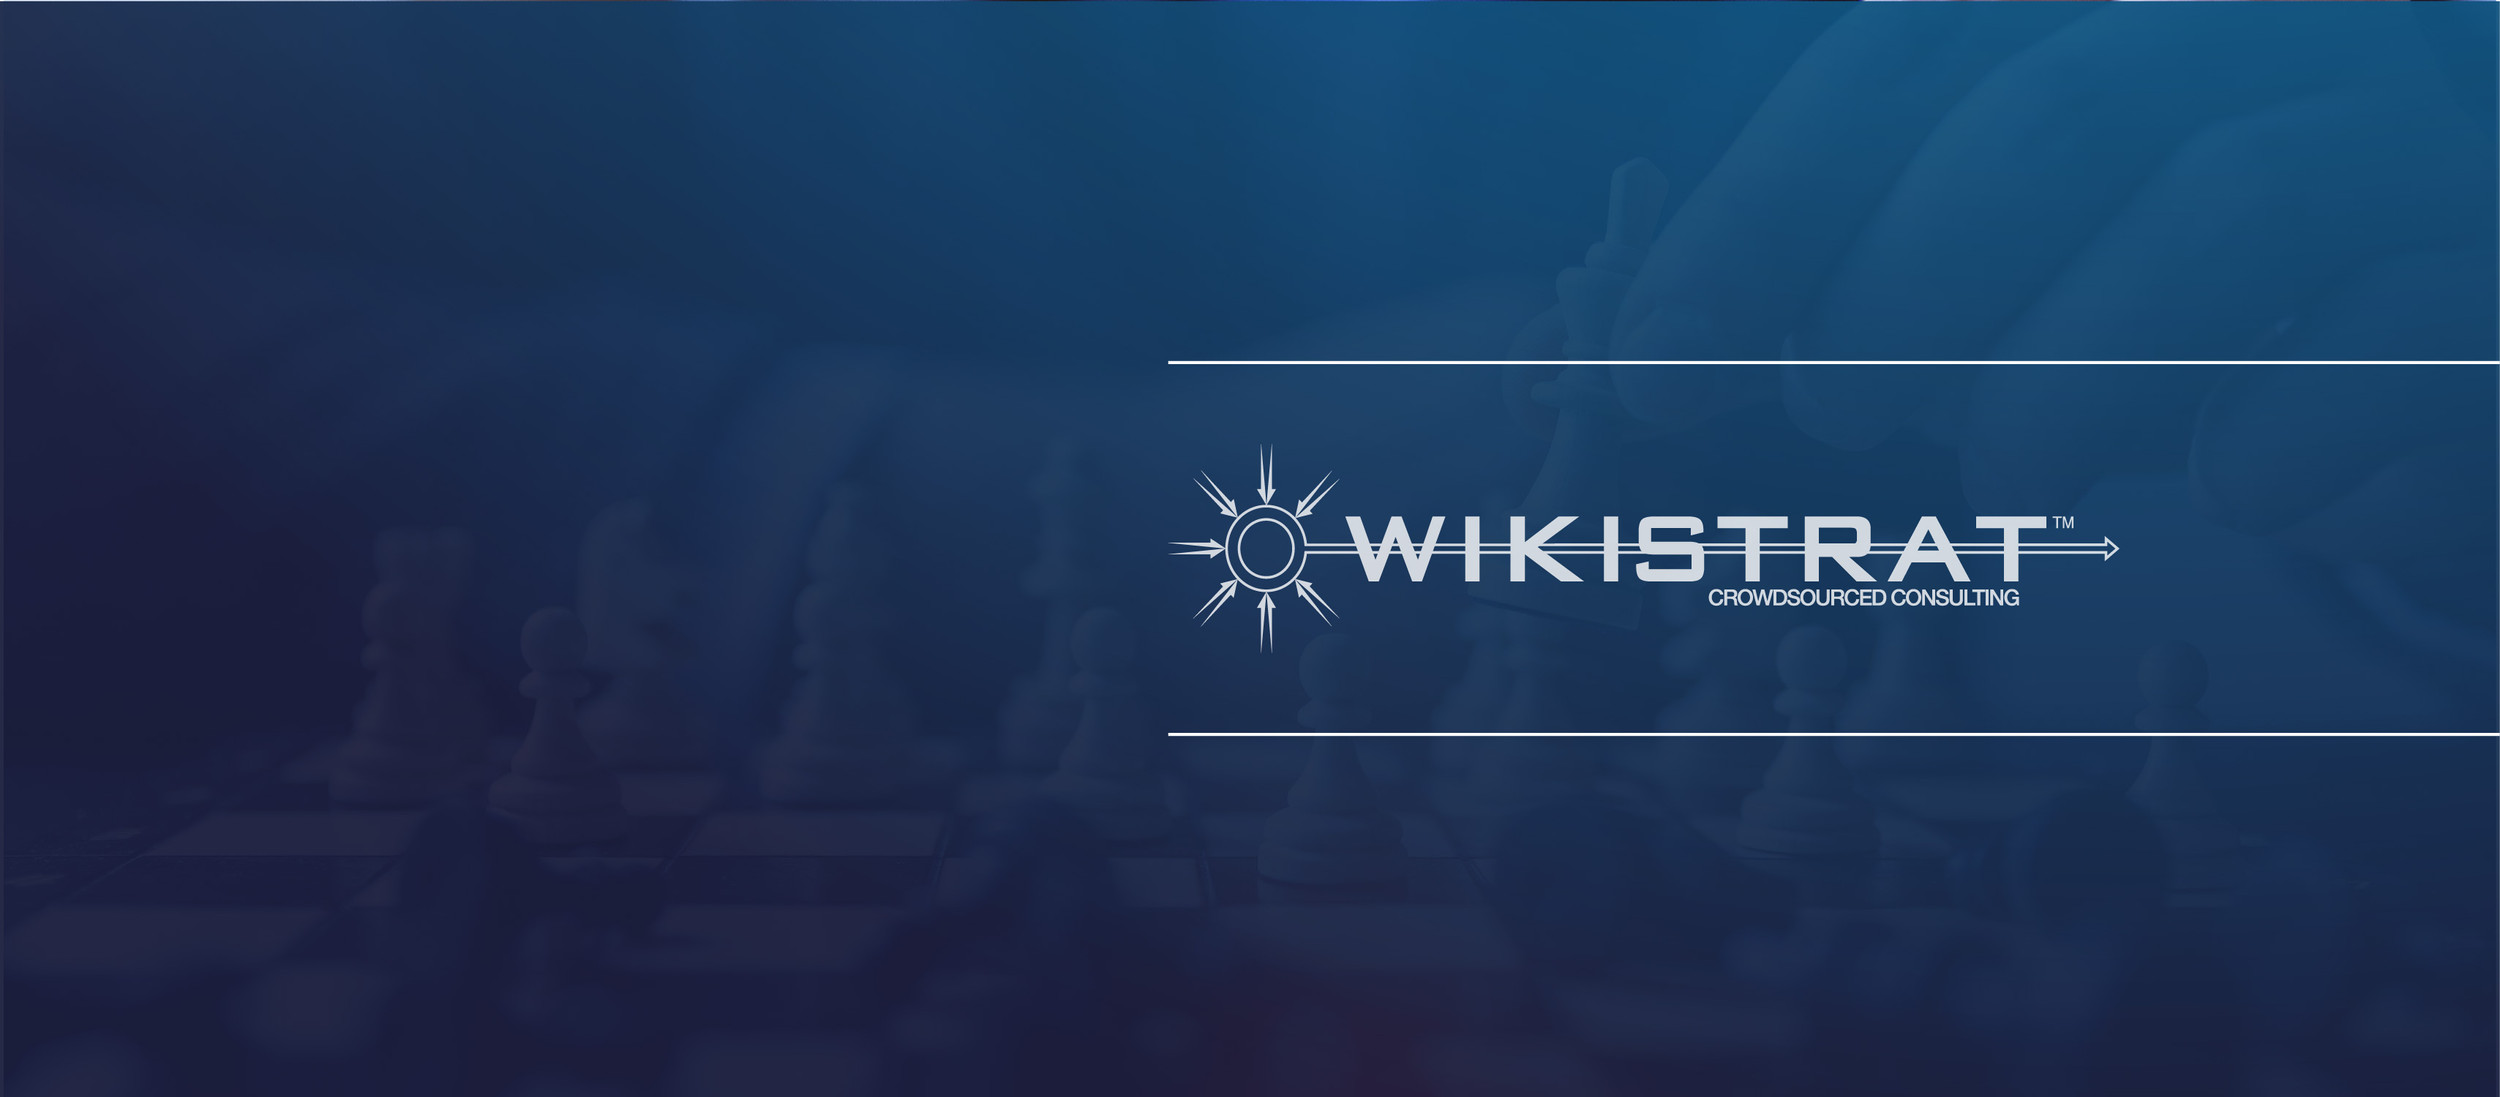 Crowdsourced Consulting | Wikistrat | United States